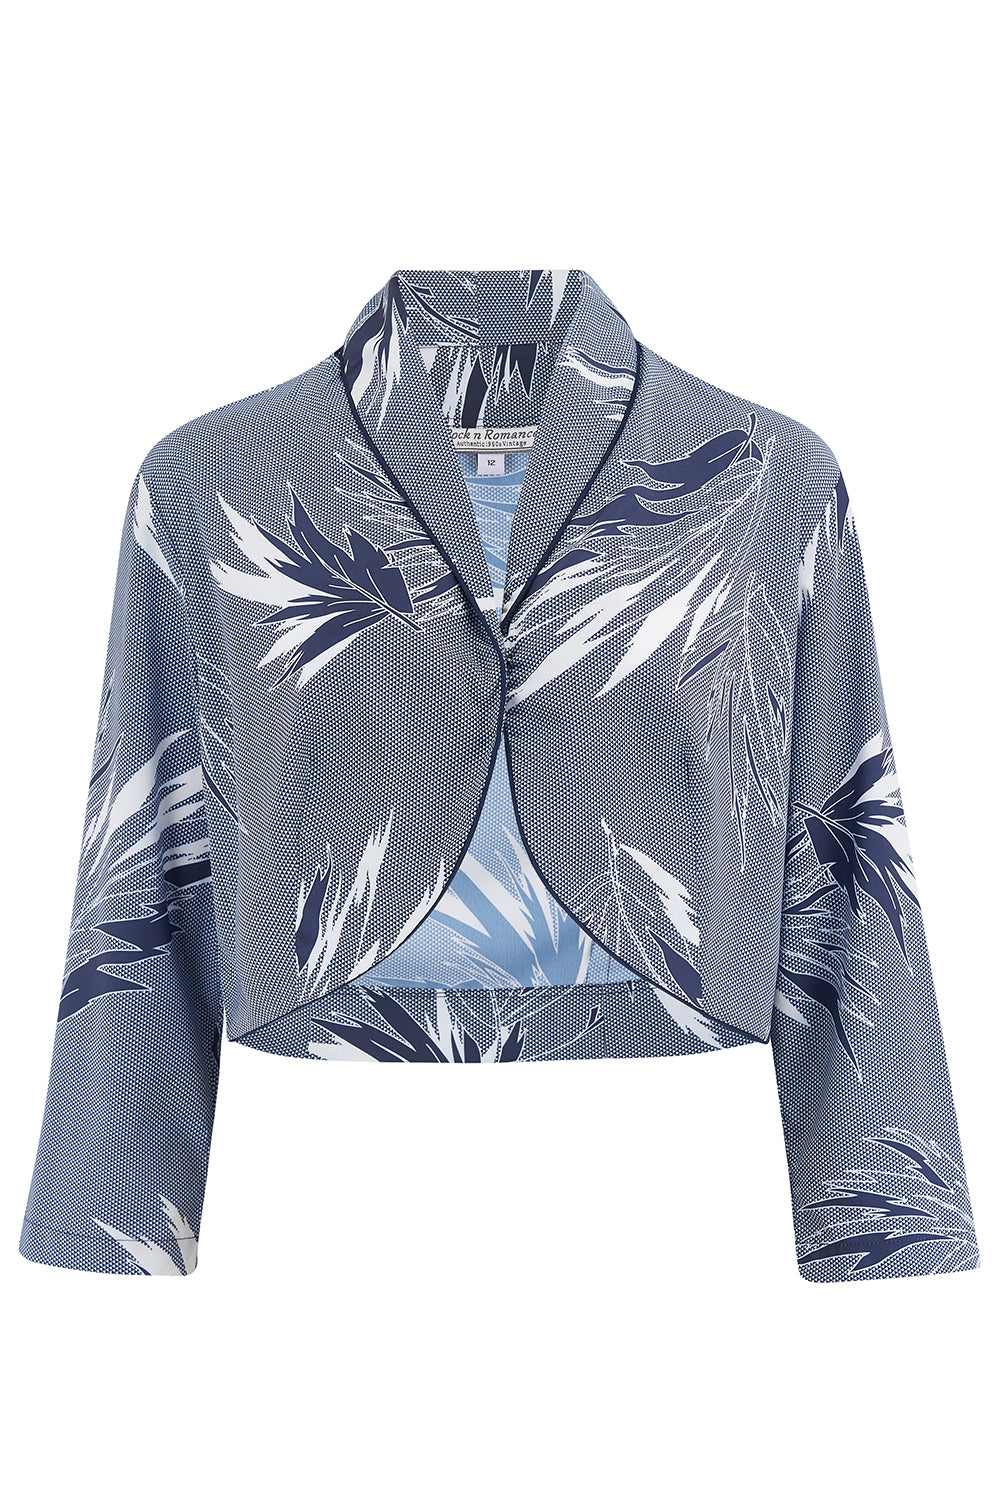 Rock n Romance **Sample Sale** Bolero in Abstract Blue Maple, Classic Vintage 1950s Inspired Style - RocknRomance Clothing